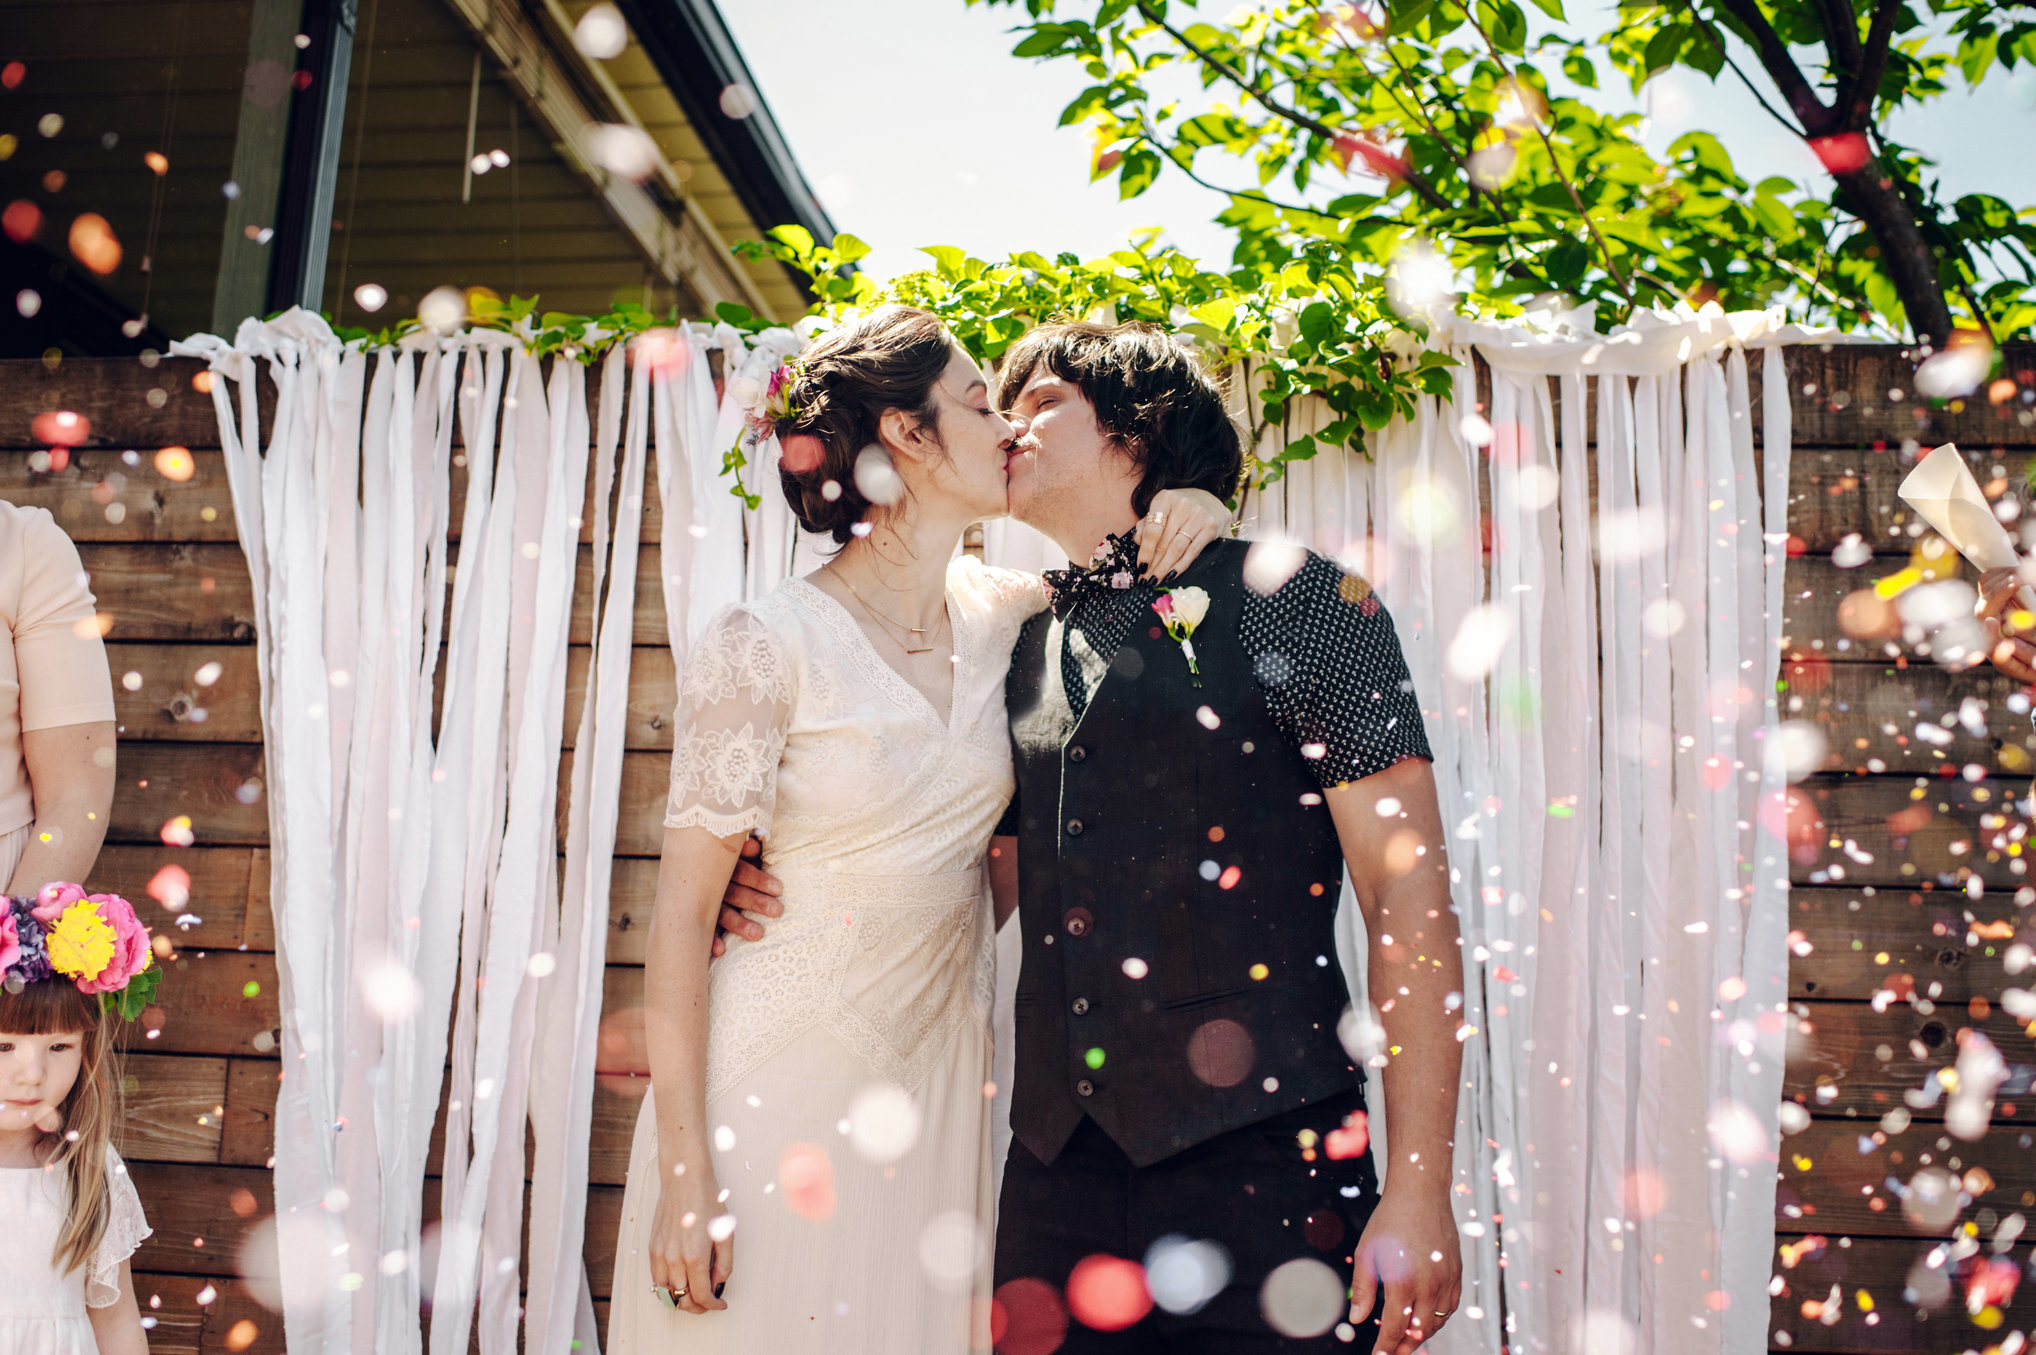 backyard wedding outdoor photo